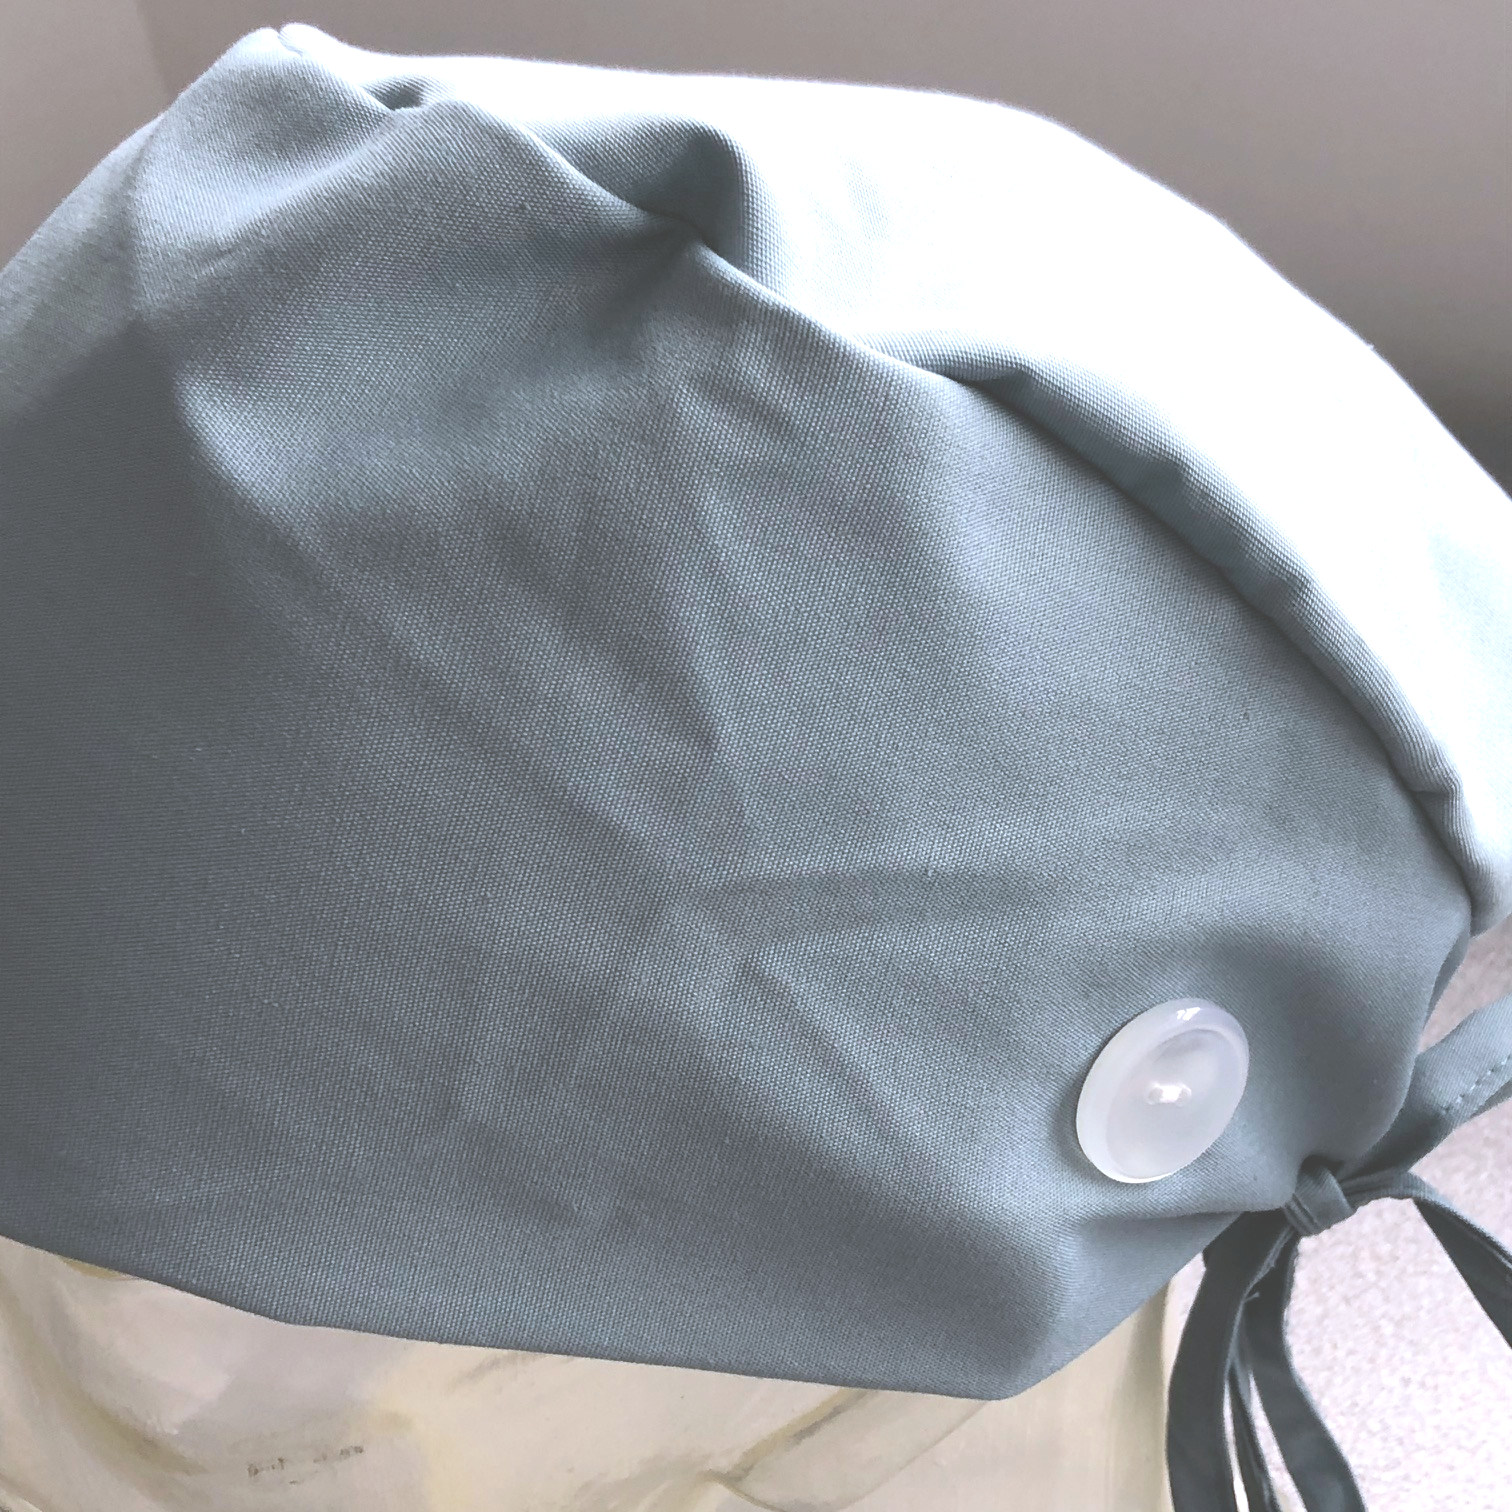 OR - SURGICAL CAP - TIE BACK